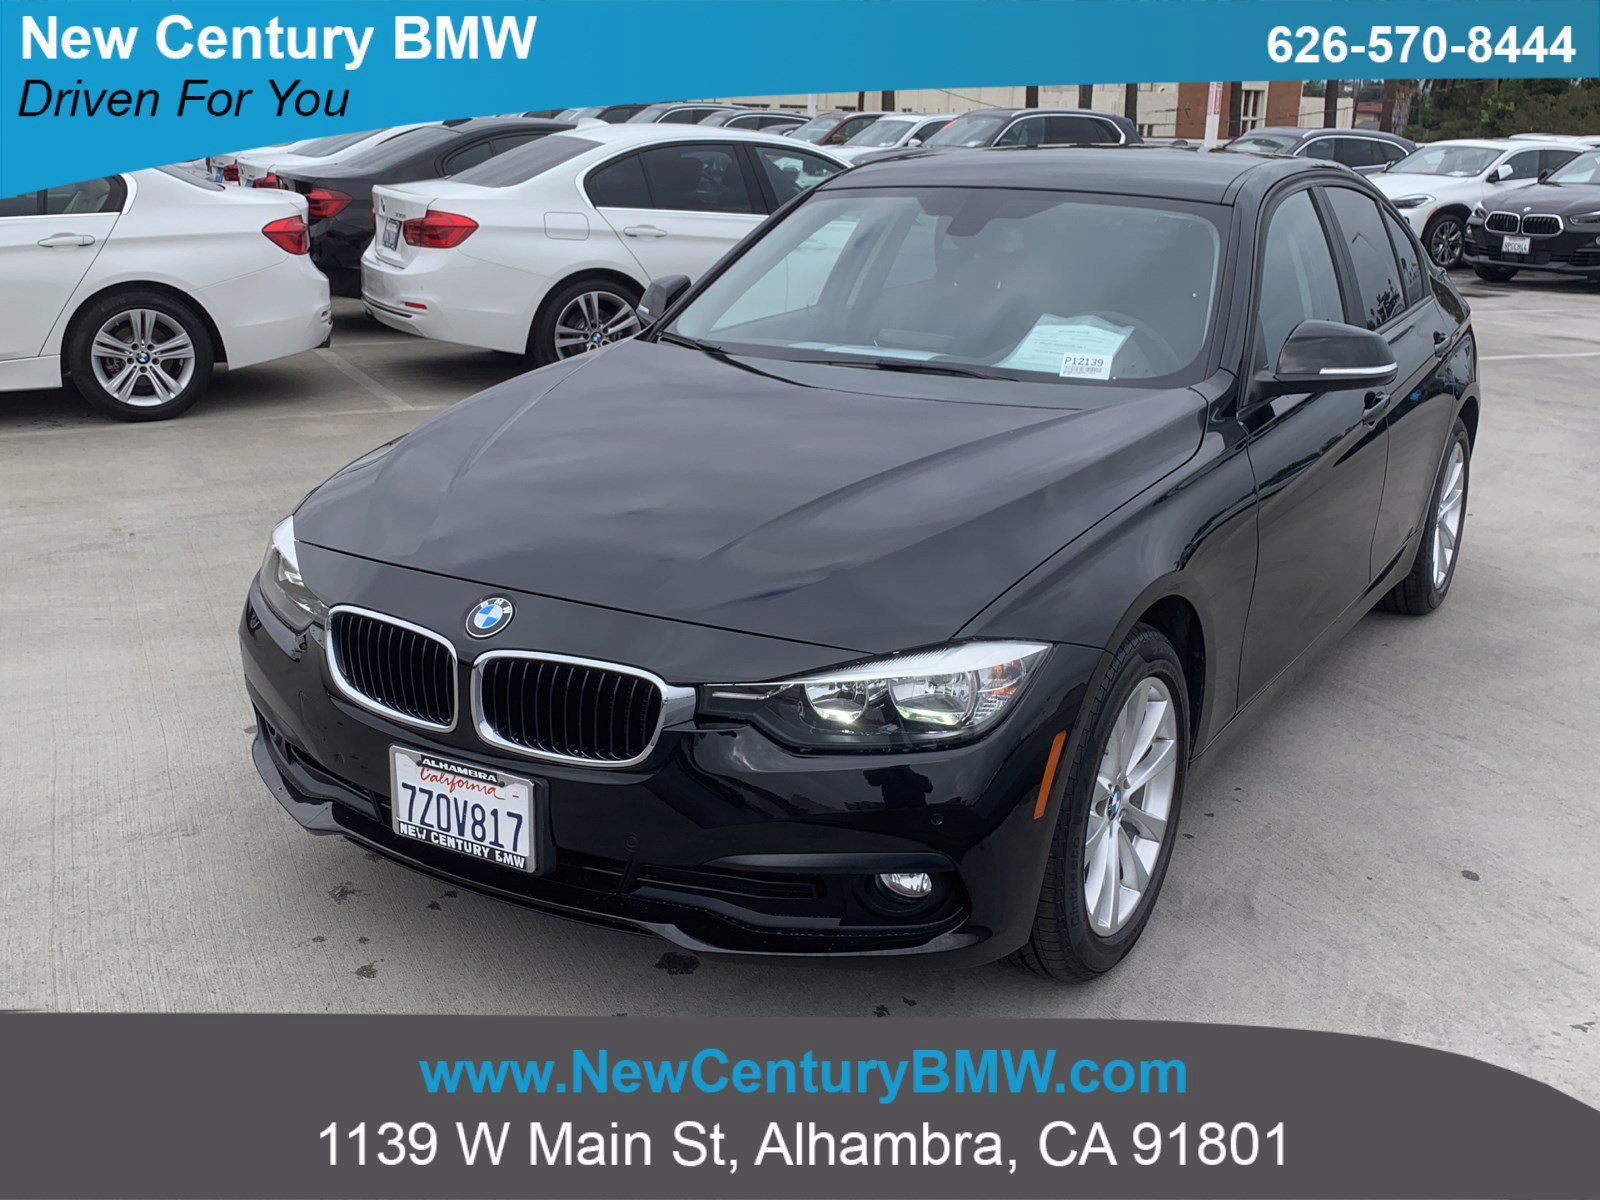 Used 2017 Bmw 3 Series For Sale Near Monrovia Ca Used Car Dealer In Alhambra